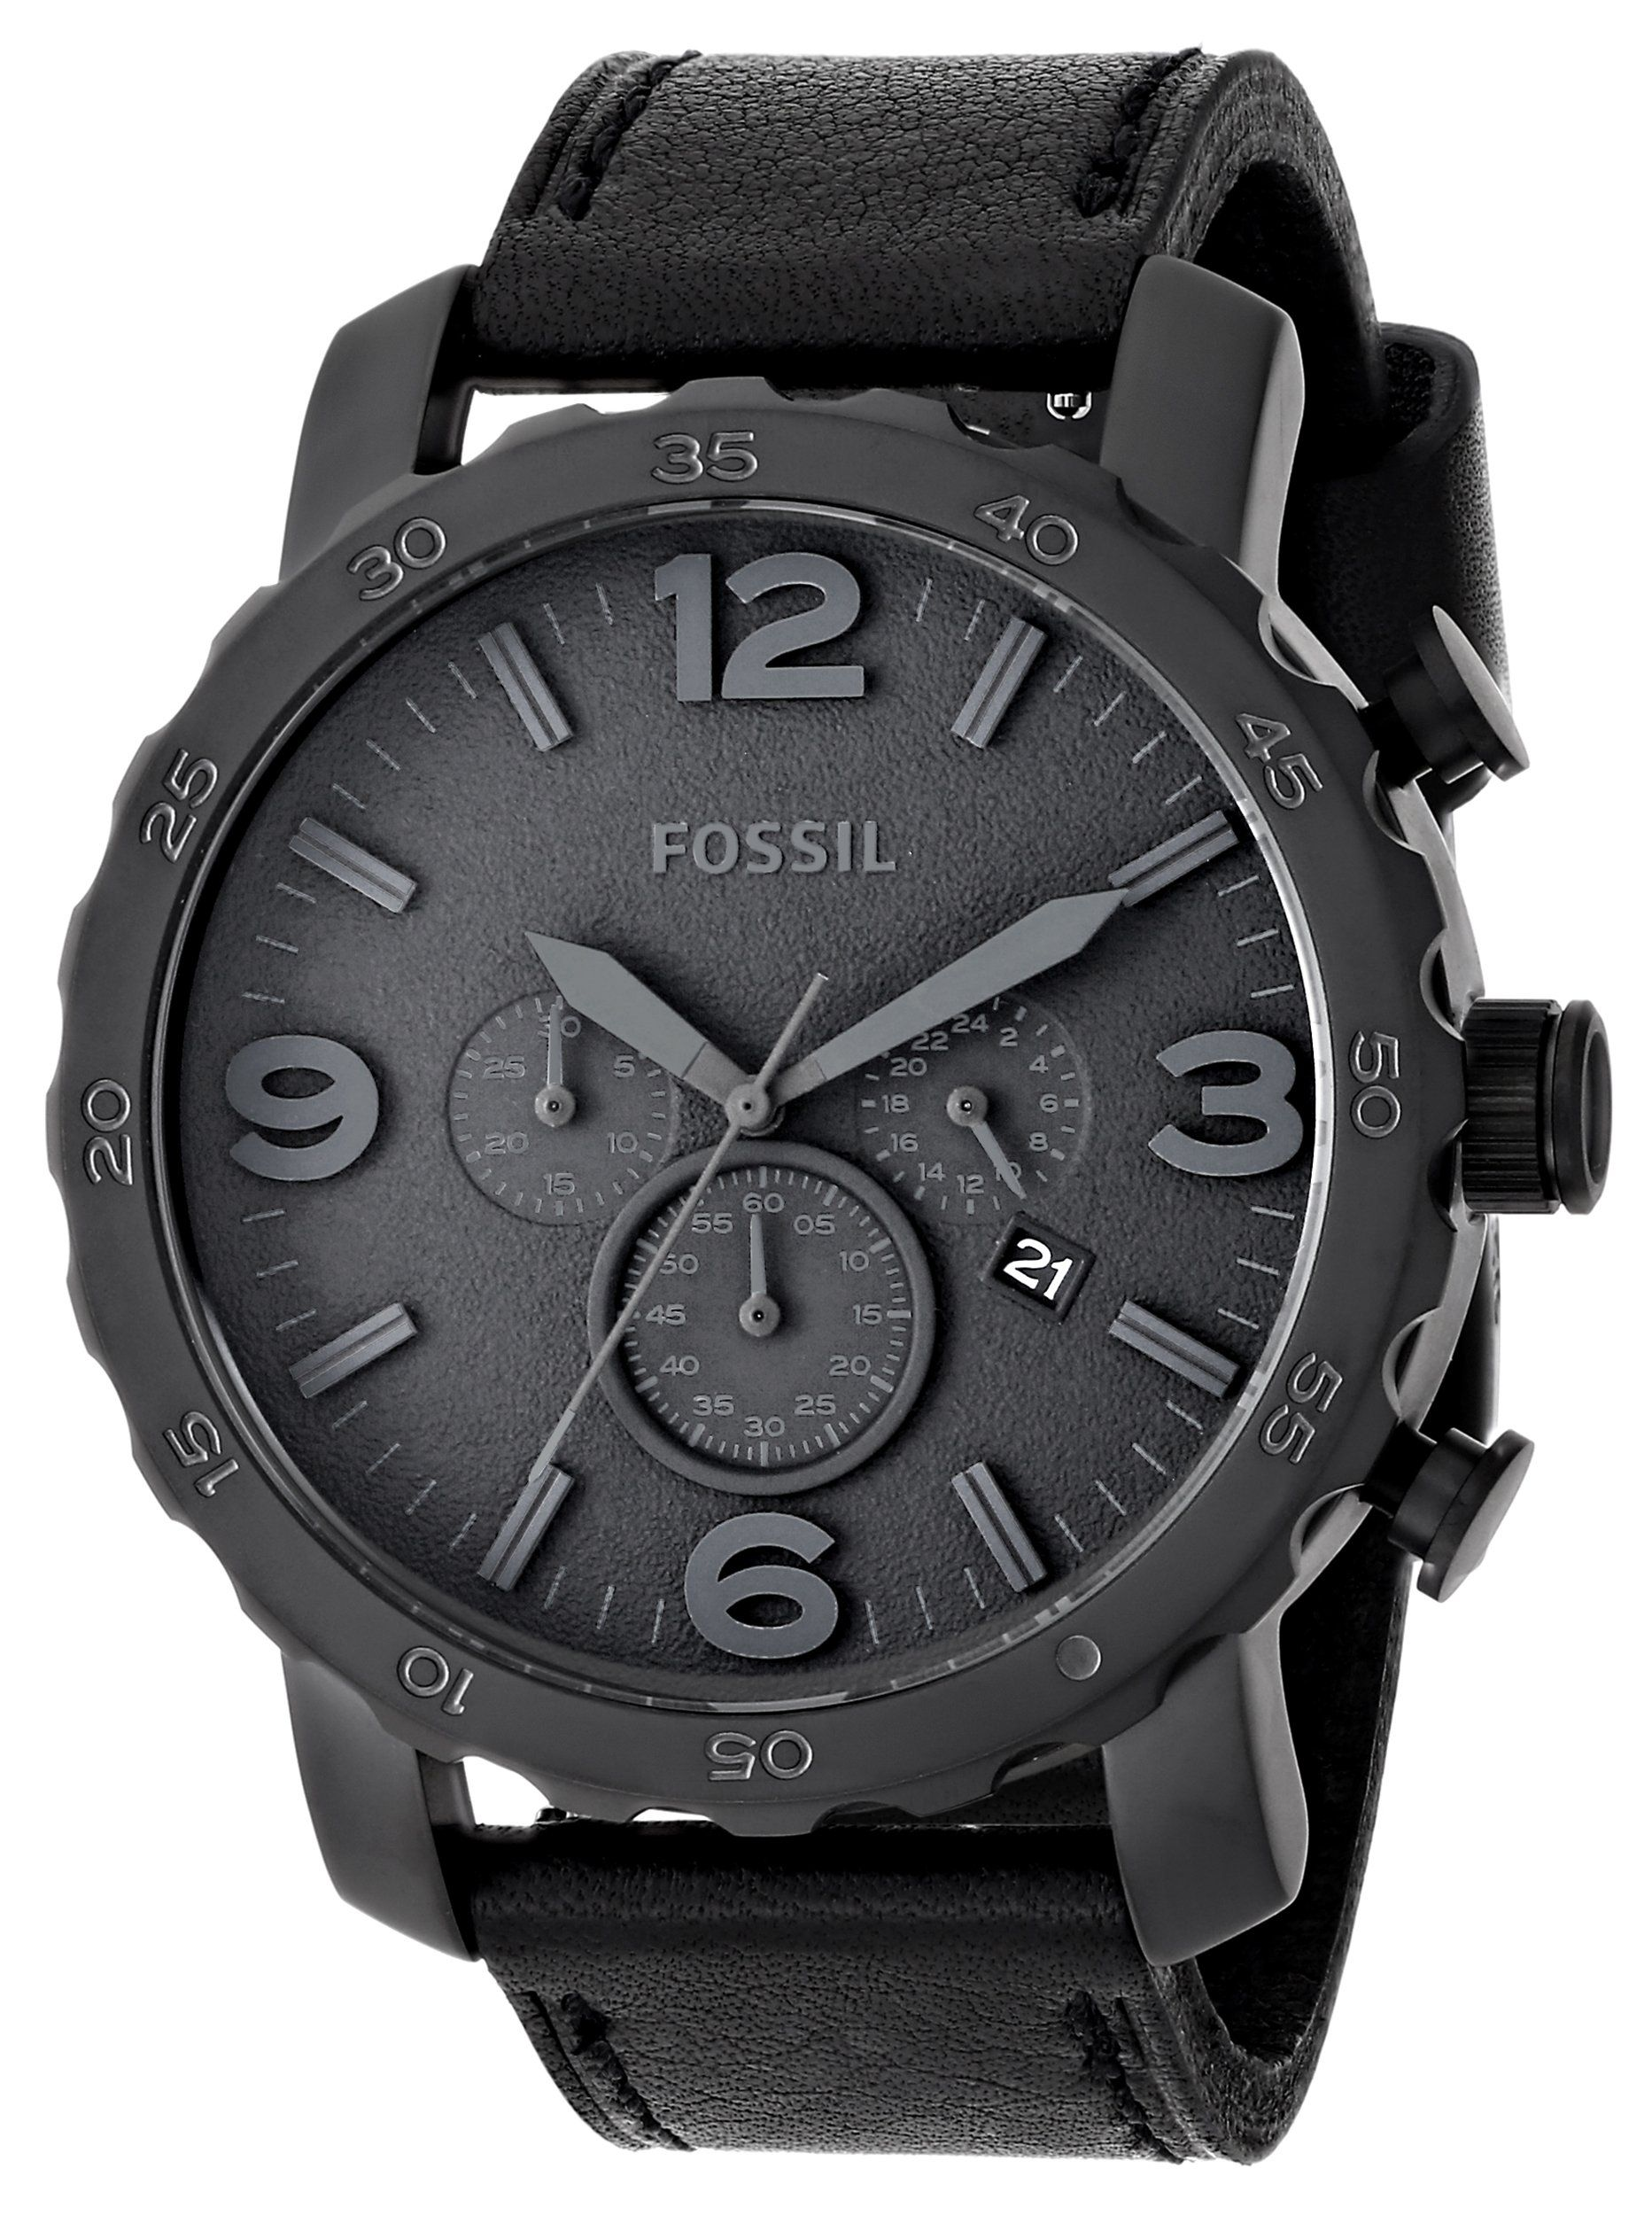 6674010124be5 Amazon.com  Fossil Men s JR1354 Nate Analog Display Analog Quartz Black  Watch  fossil  Watches